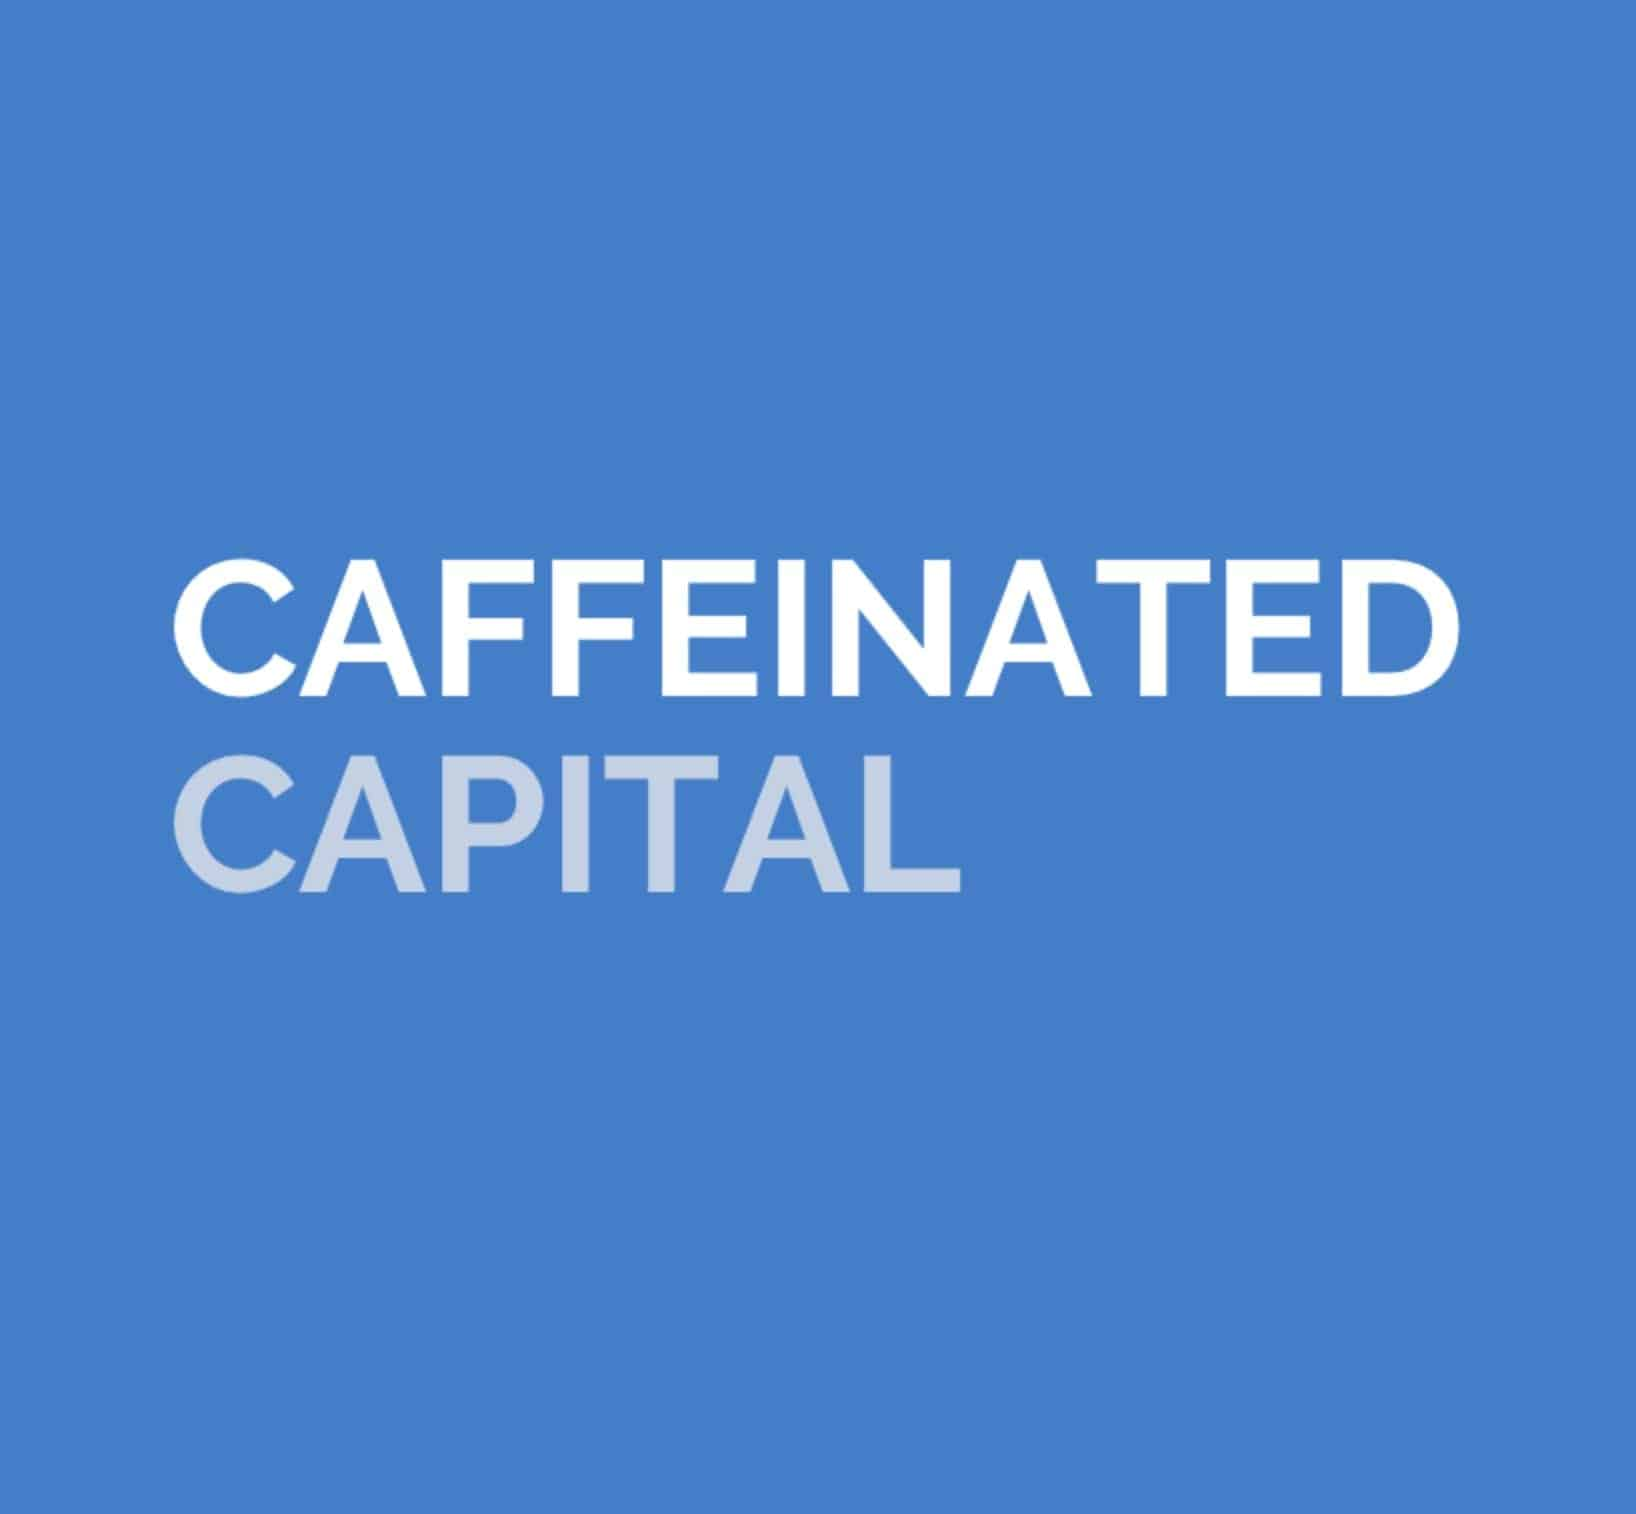 Caffeinated Capital Logo